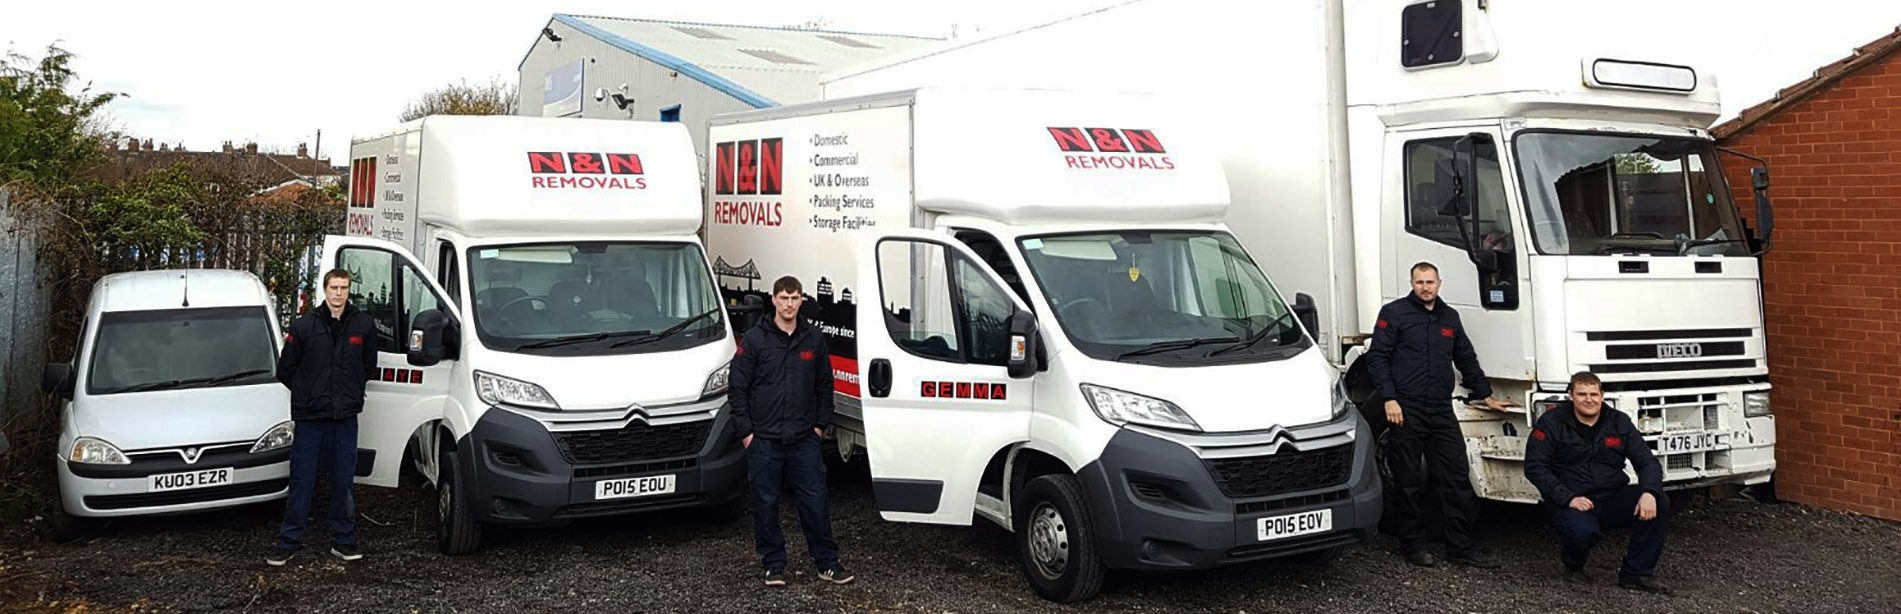 2bf67b4e62 N N Removals has been a removals company since 1996